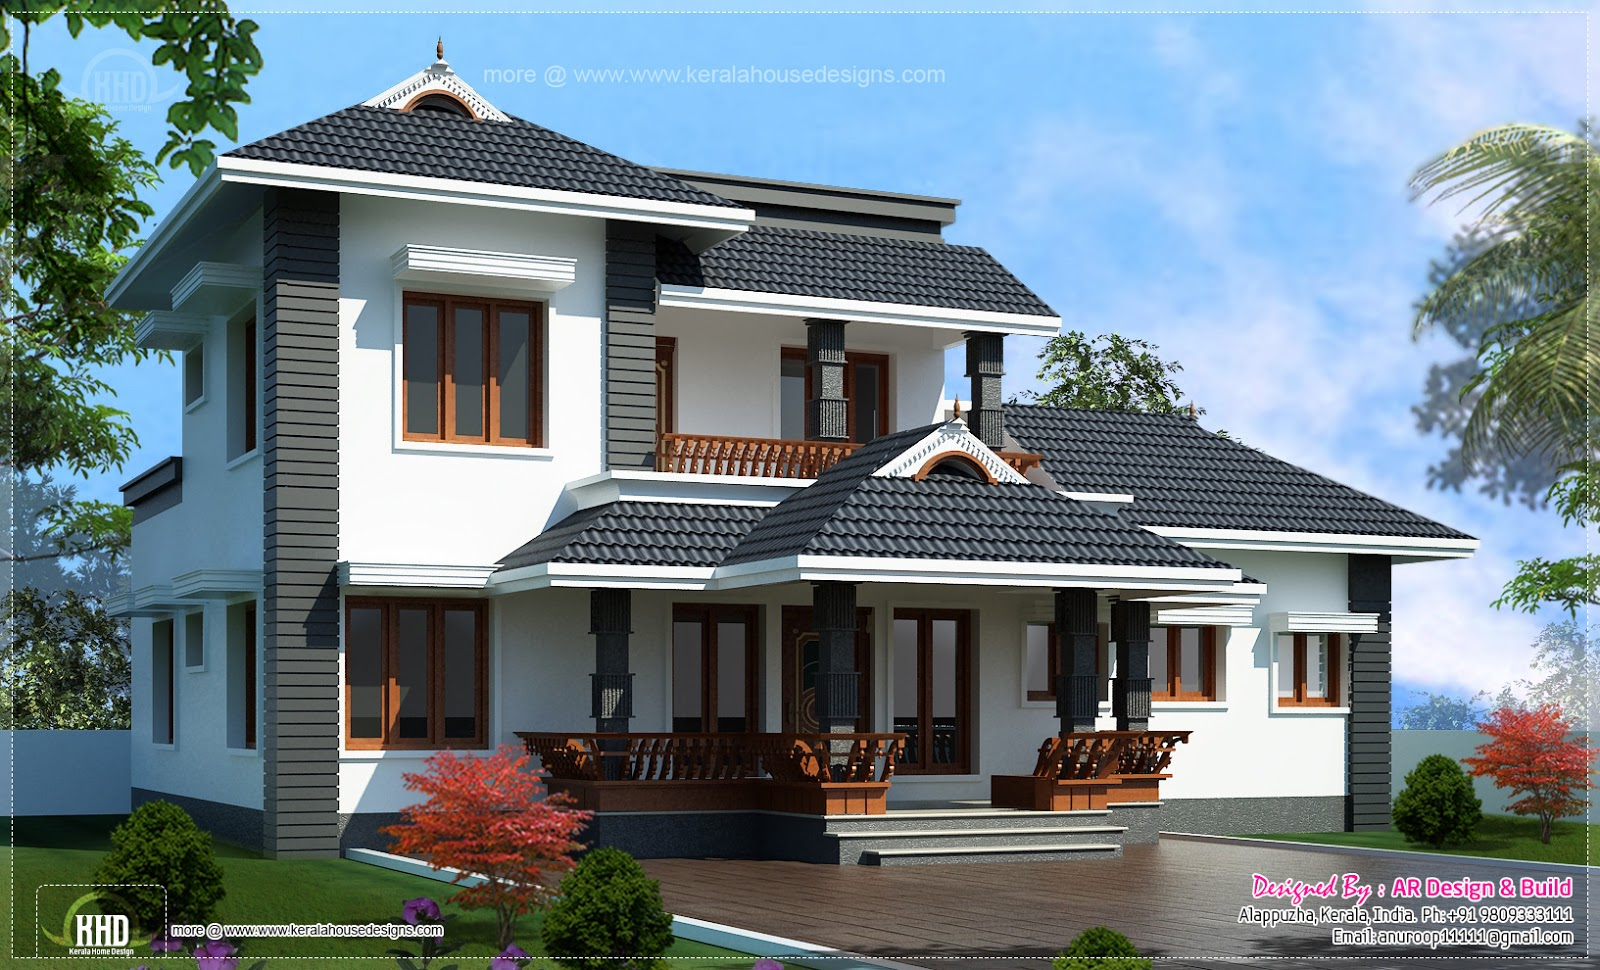 2000 4 bedroom sloping roof residence kerala for Traditional house plans in india